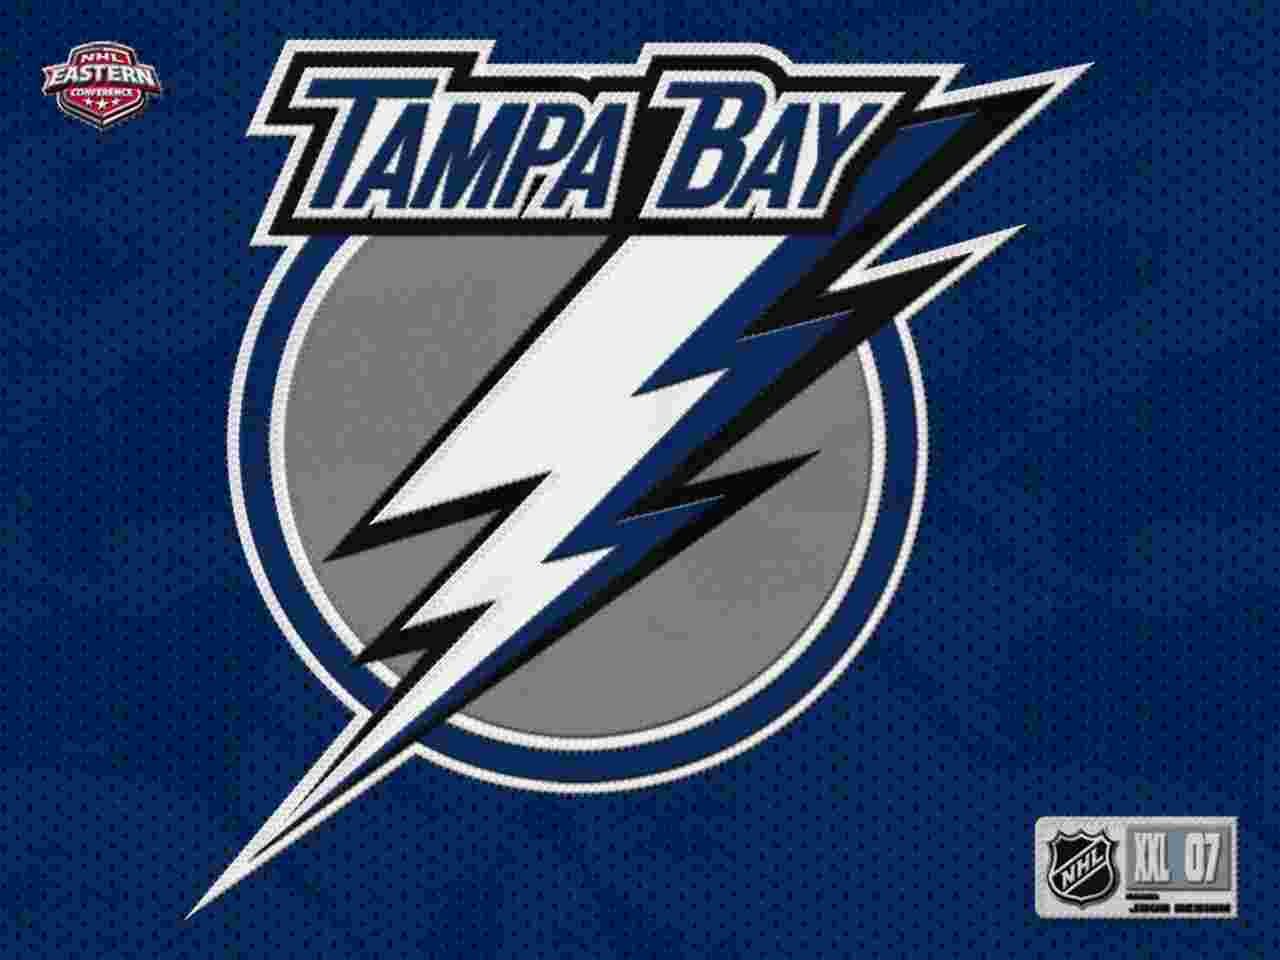 Hockey Lightning Tampa Bay Desktop Wallpaper Click To View Pictures to 1280x960